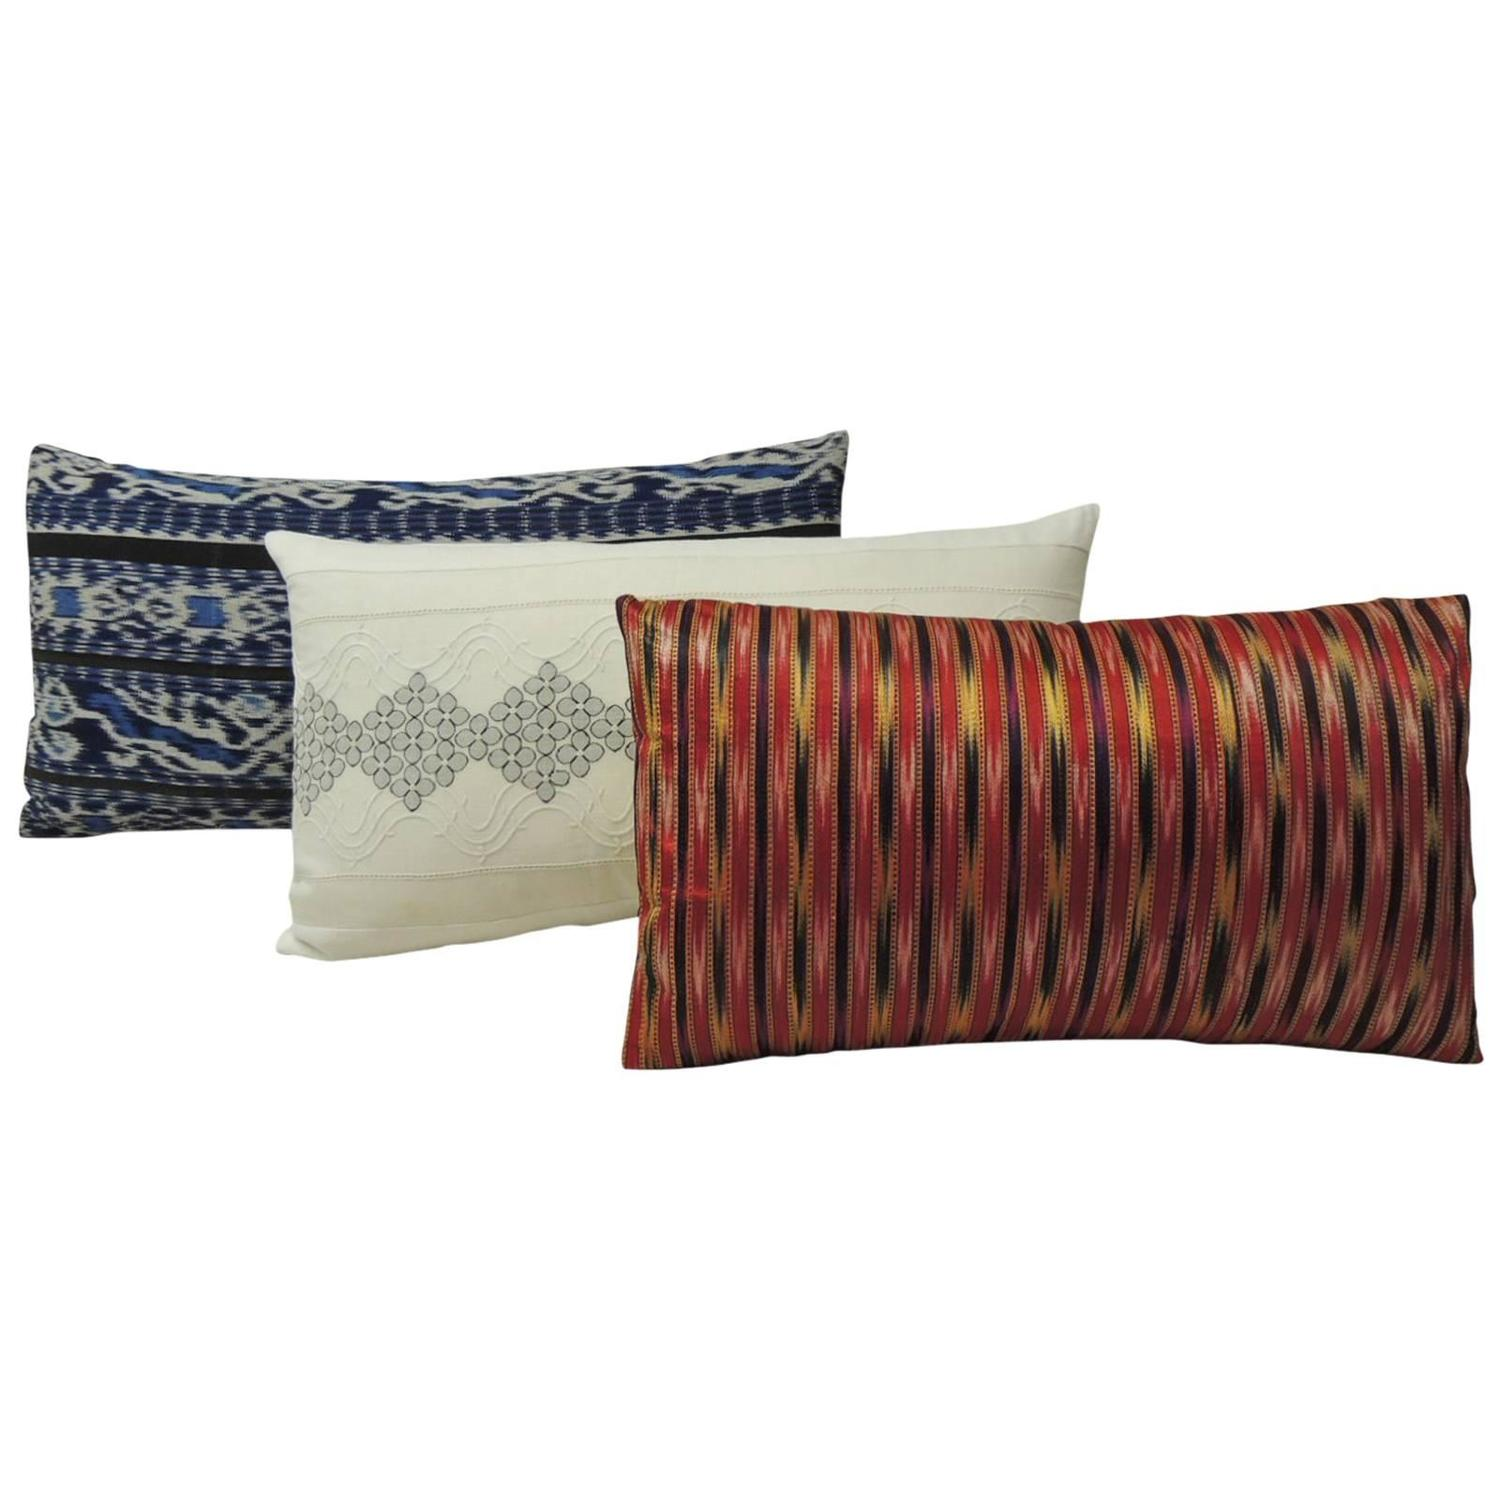 decorative bolster and lumbar pillows at 1stdibs